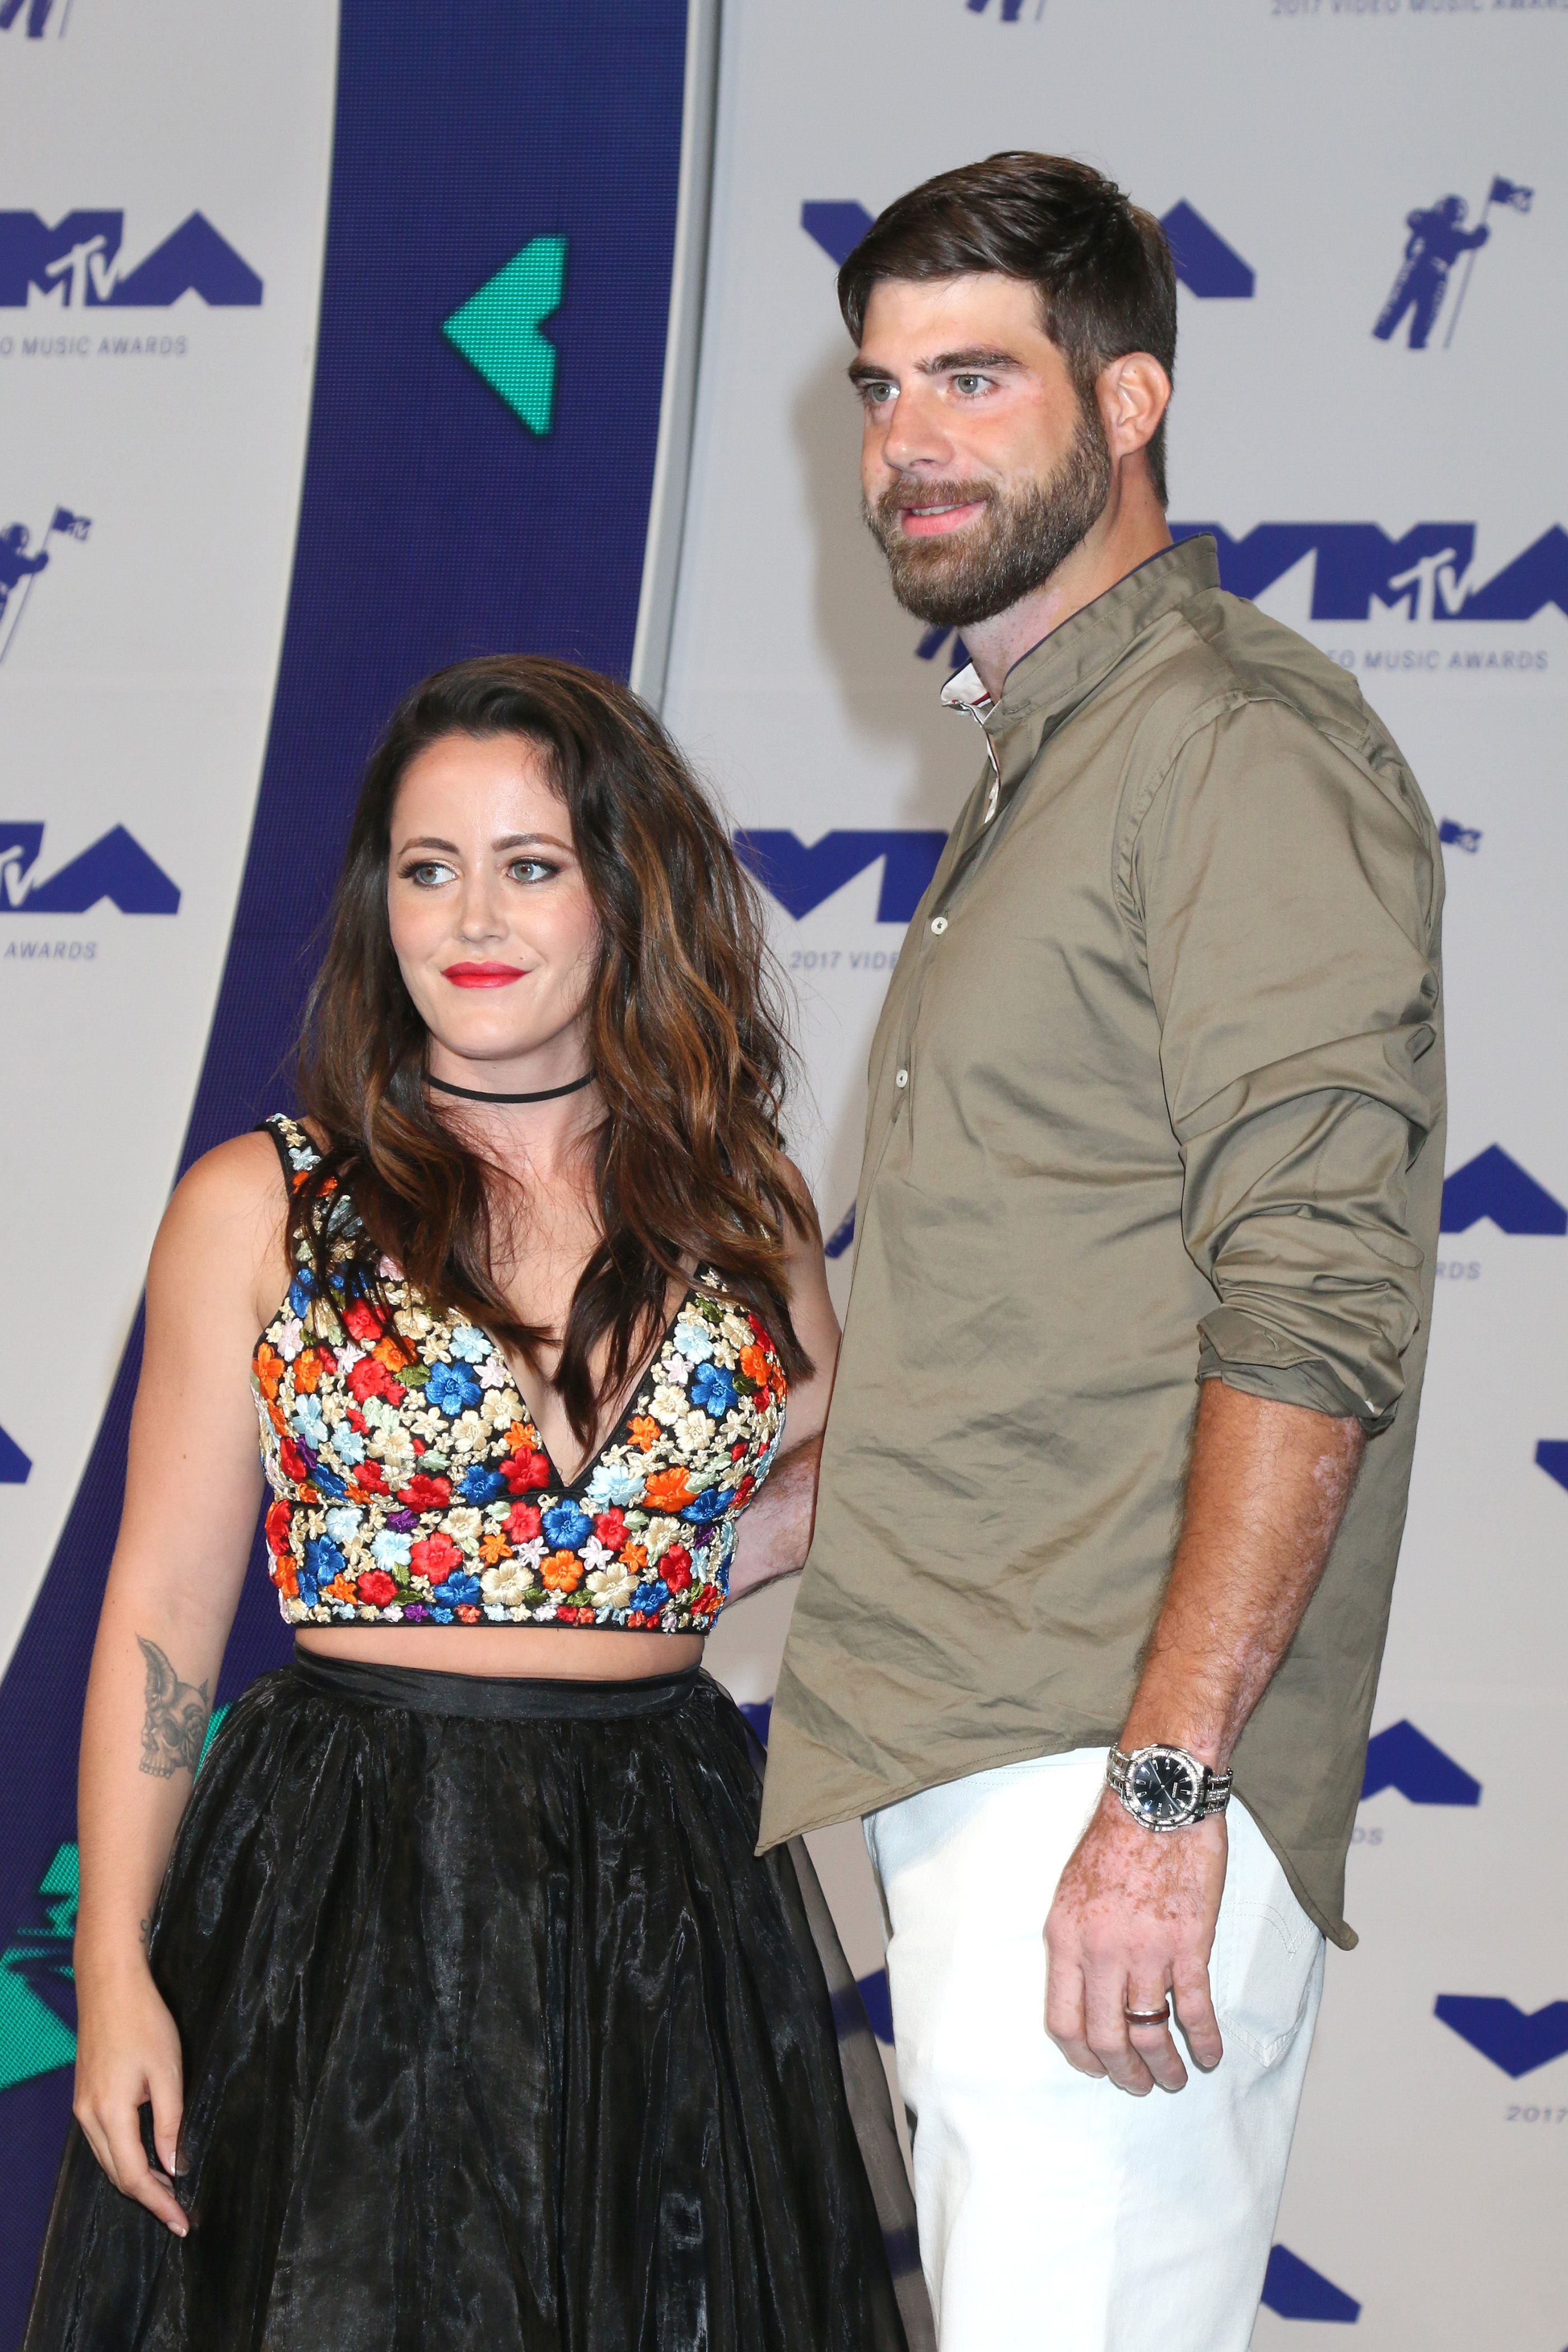 Jenelle Evans wears a floral crop top with David Eason in white pants.